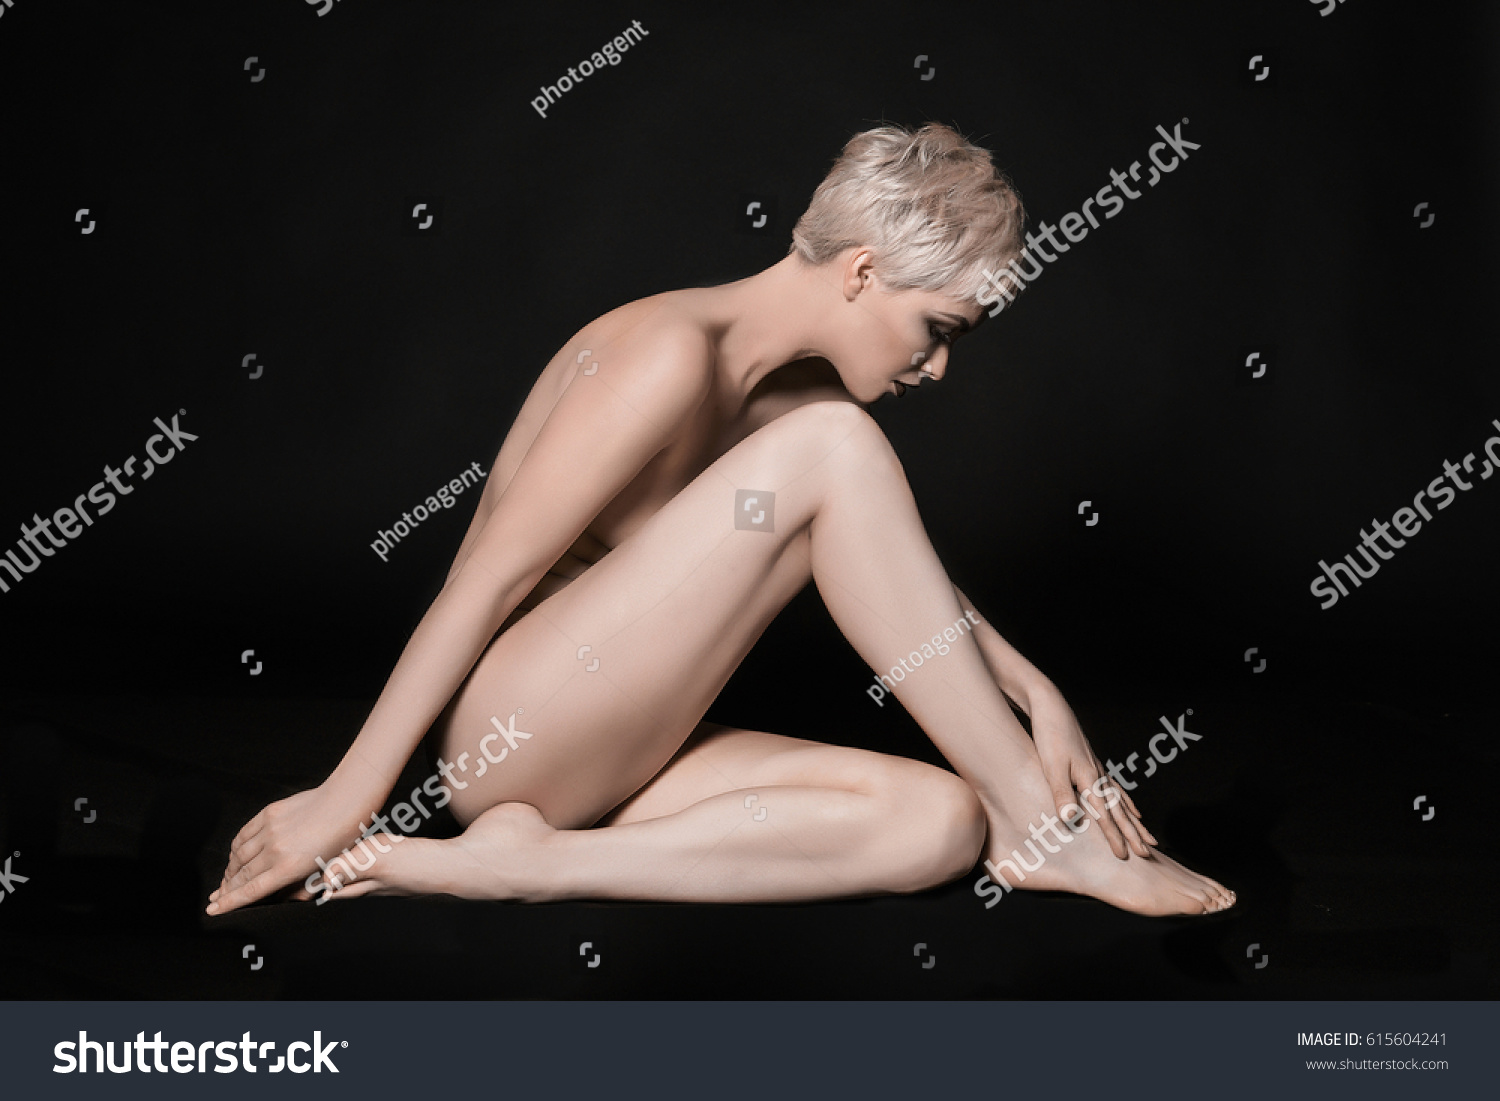 Nude Women With Hair 12